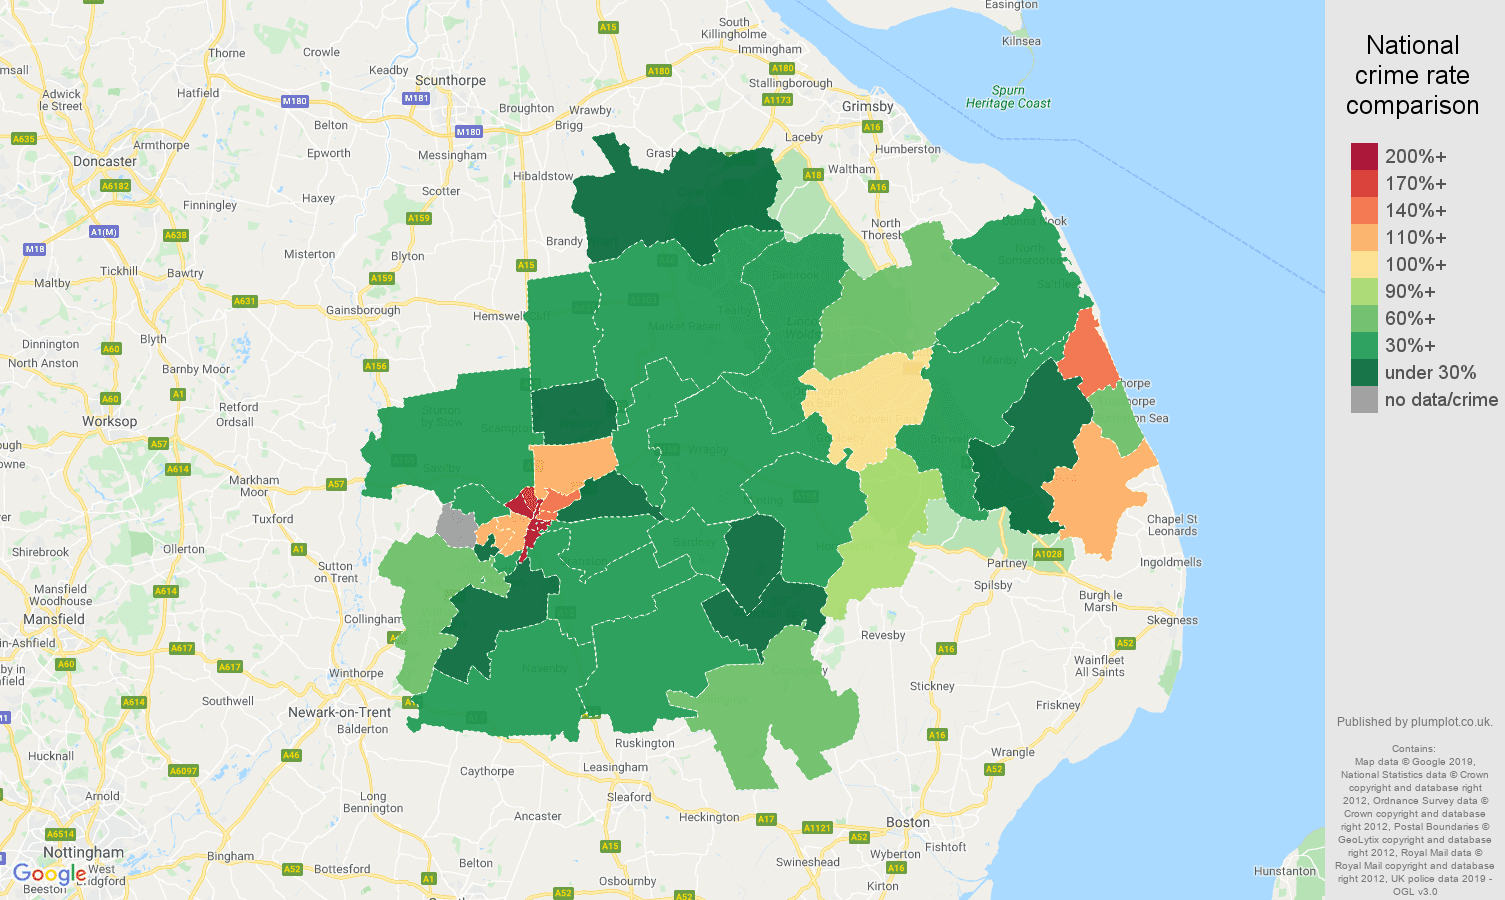 Lincoln public order crime rate comparison map